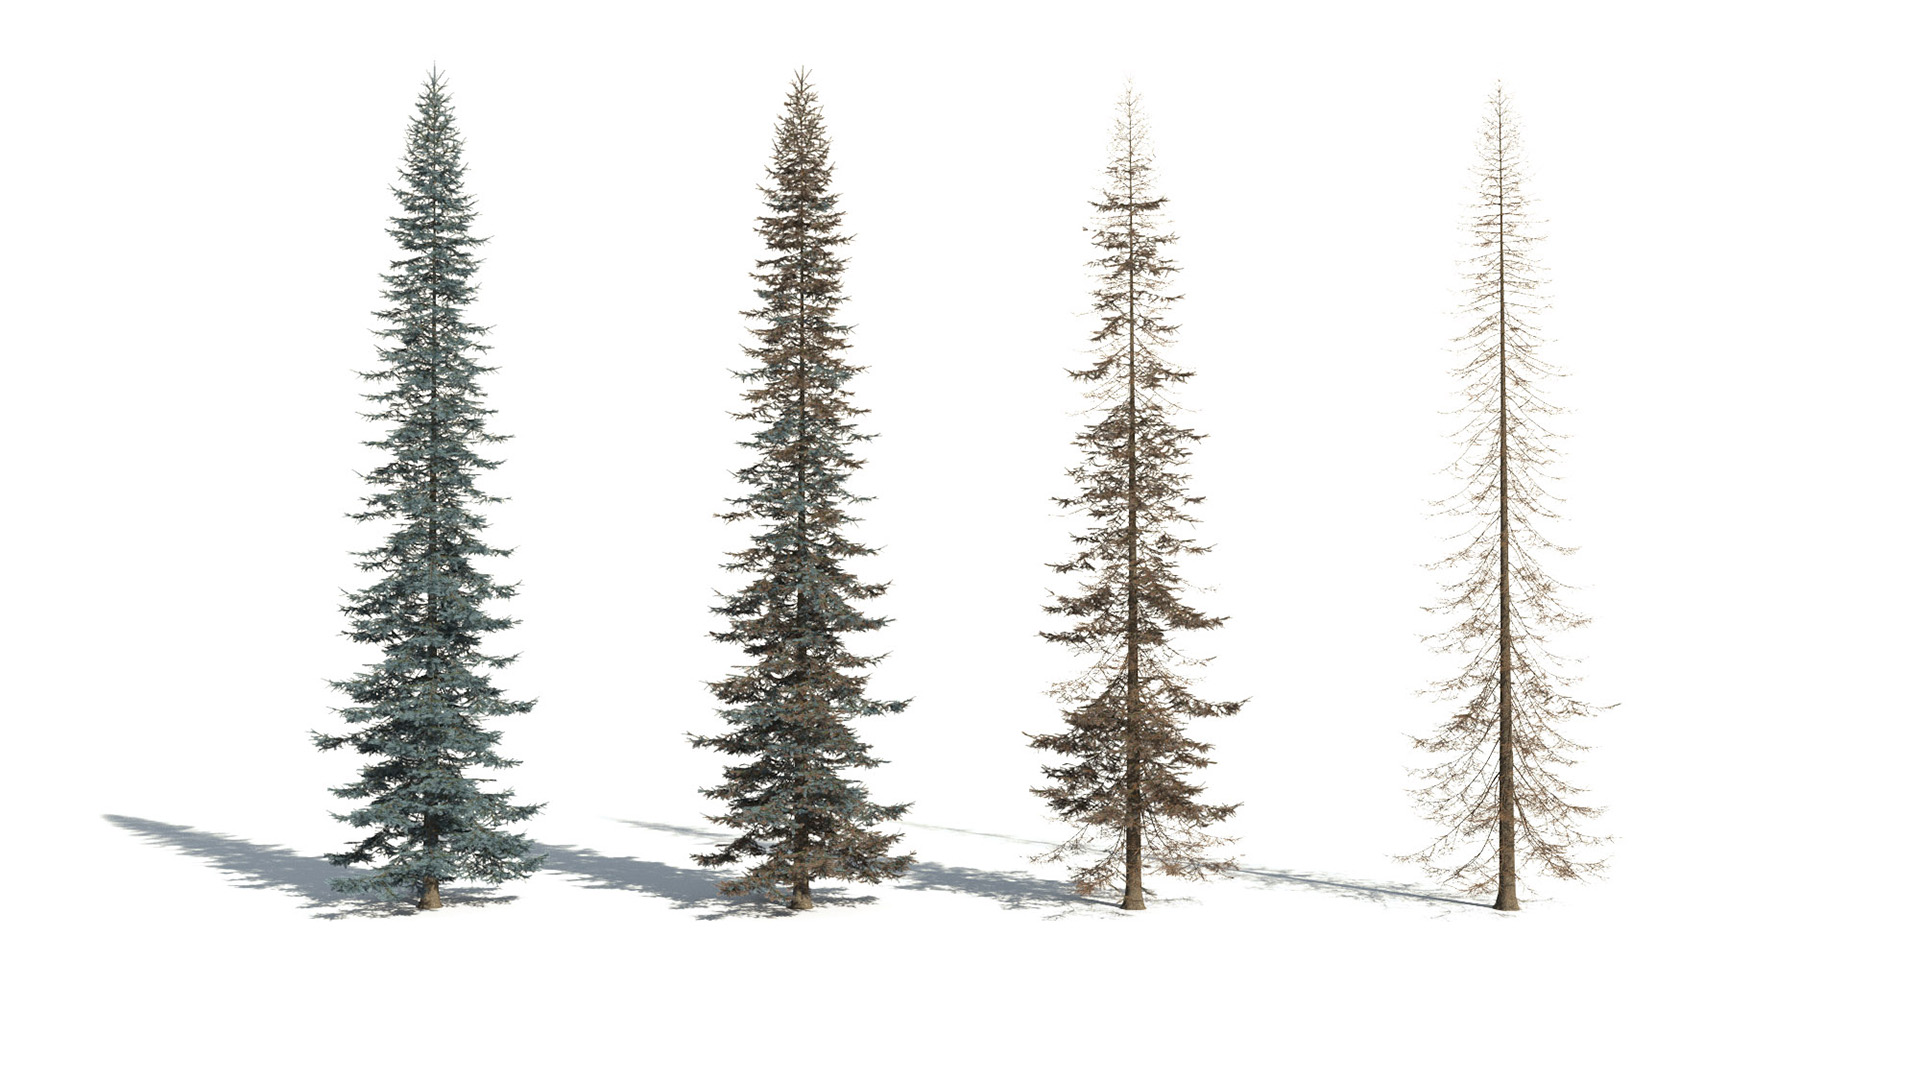 3D model of the Colorado Blue spruce Picea pungens health variations